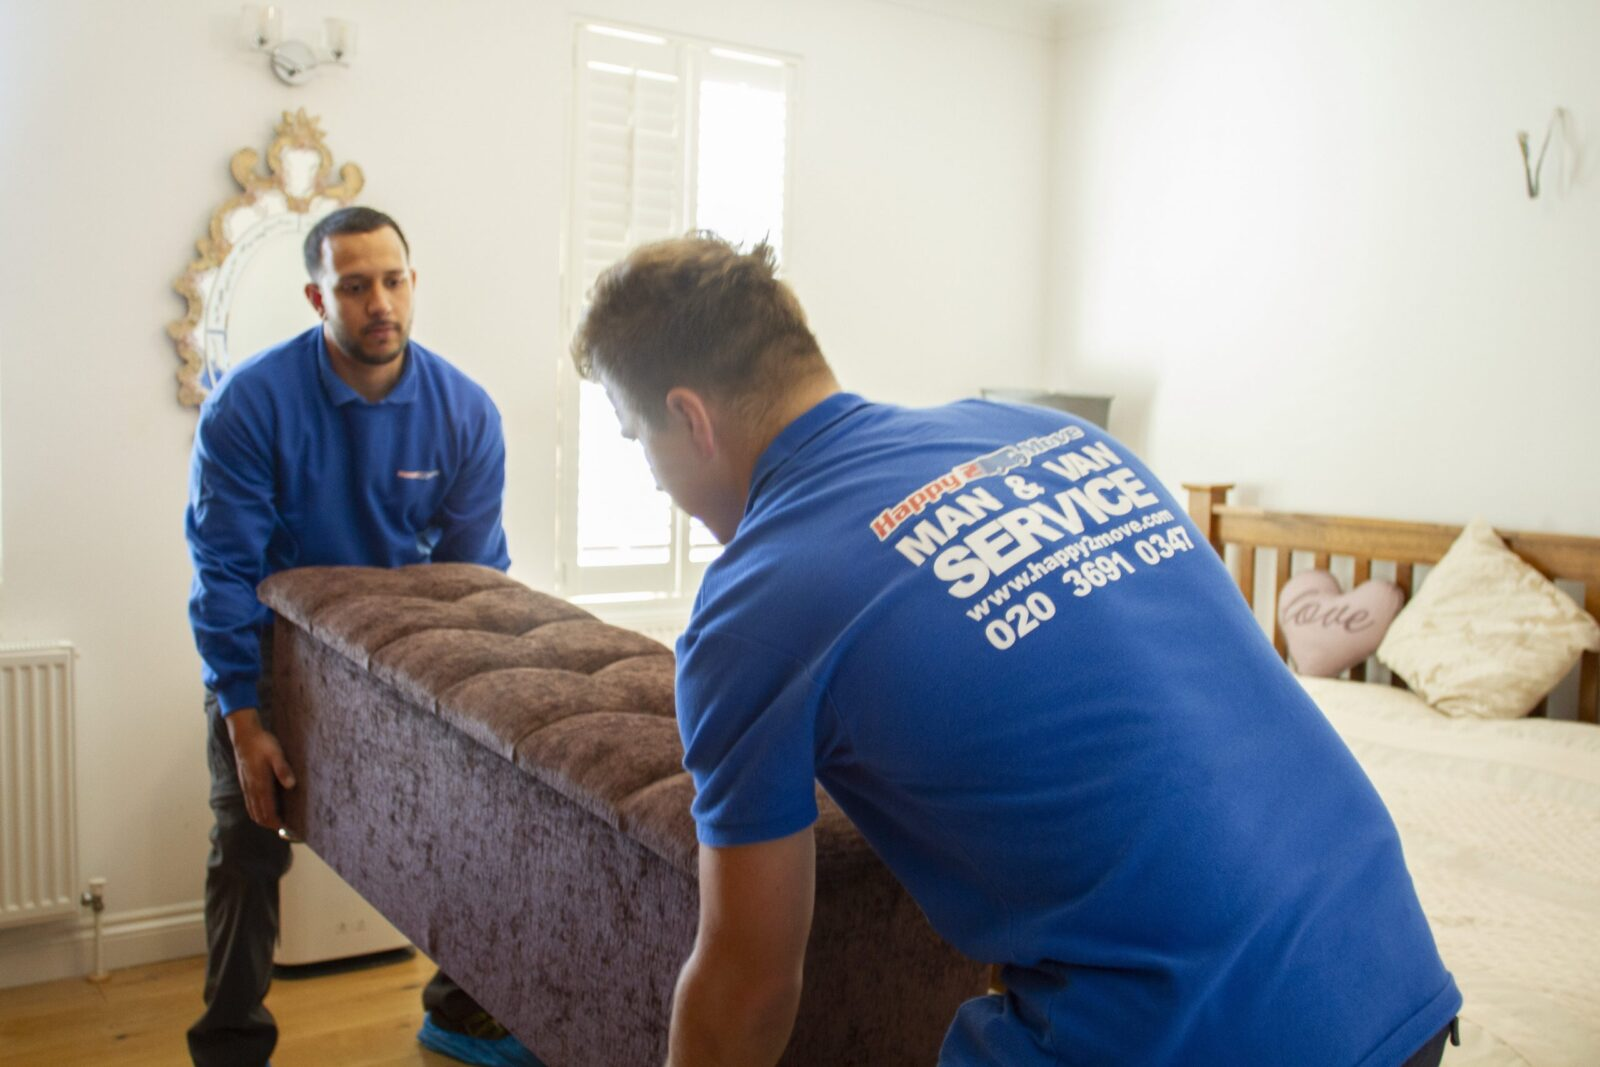 removals and storage solutions'